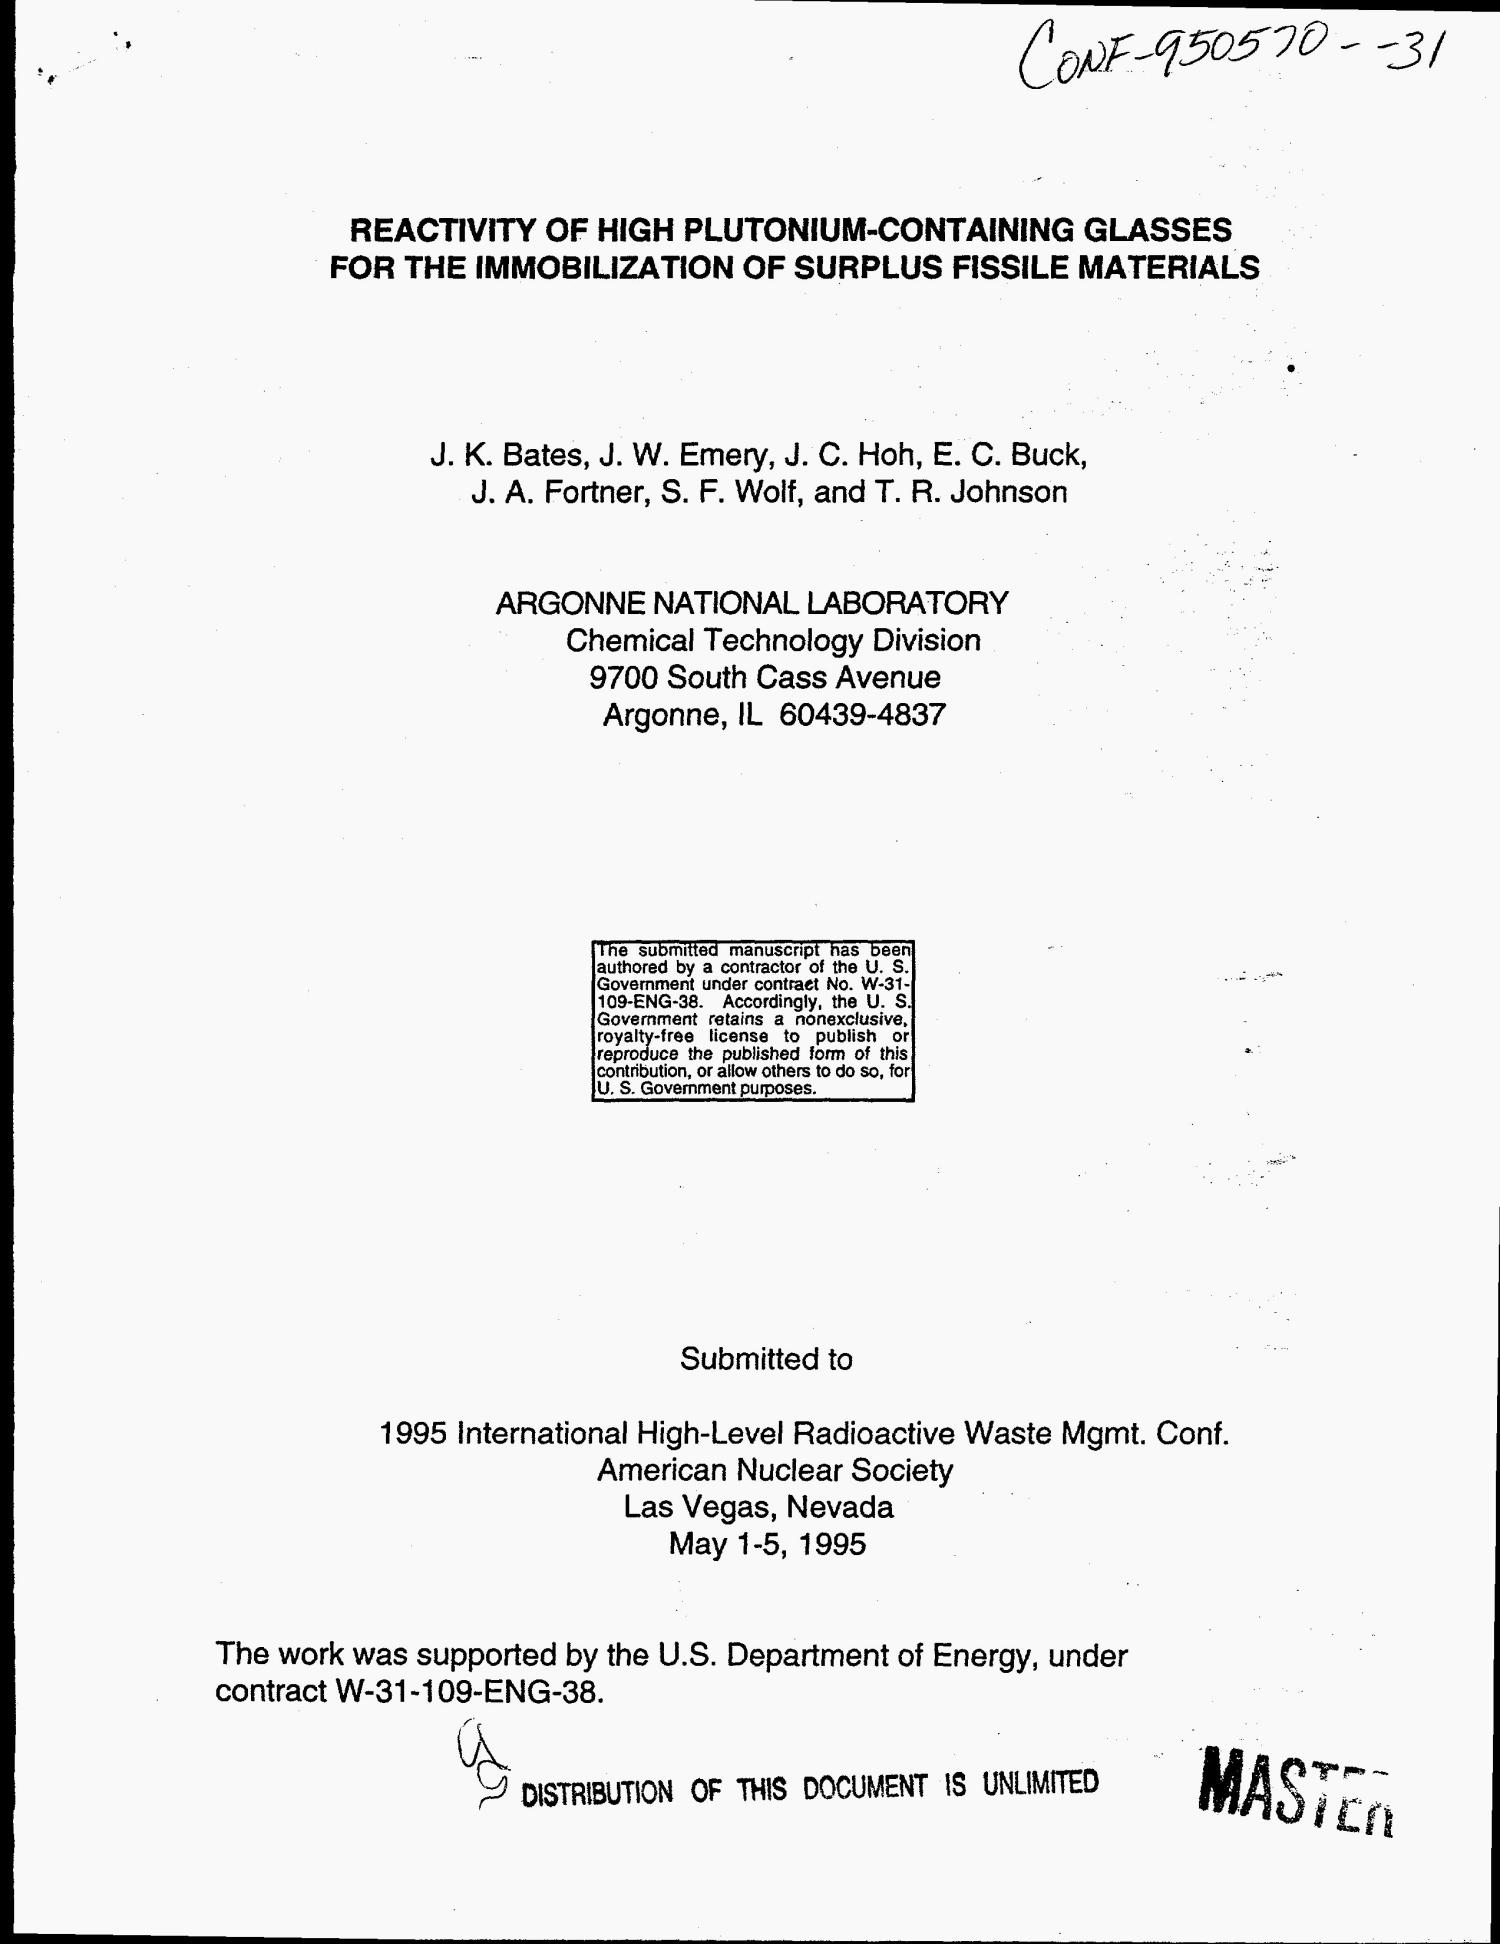 Reactivity of high plutonium-containing glasses for the immobilization of surplus fissile materials                                                                                                      [Sequence #]: 1 of 9